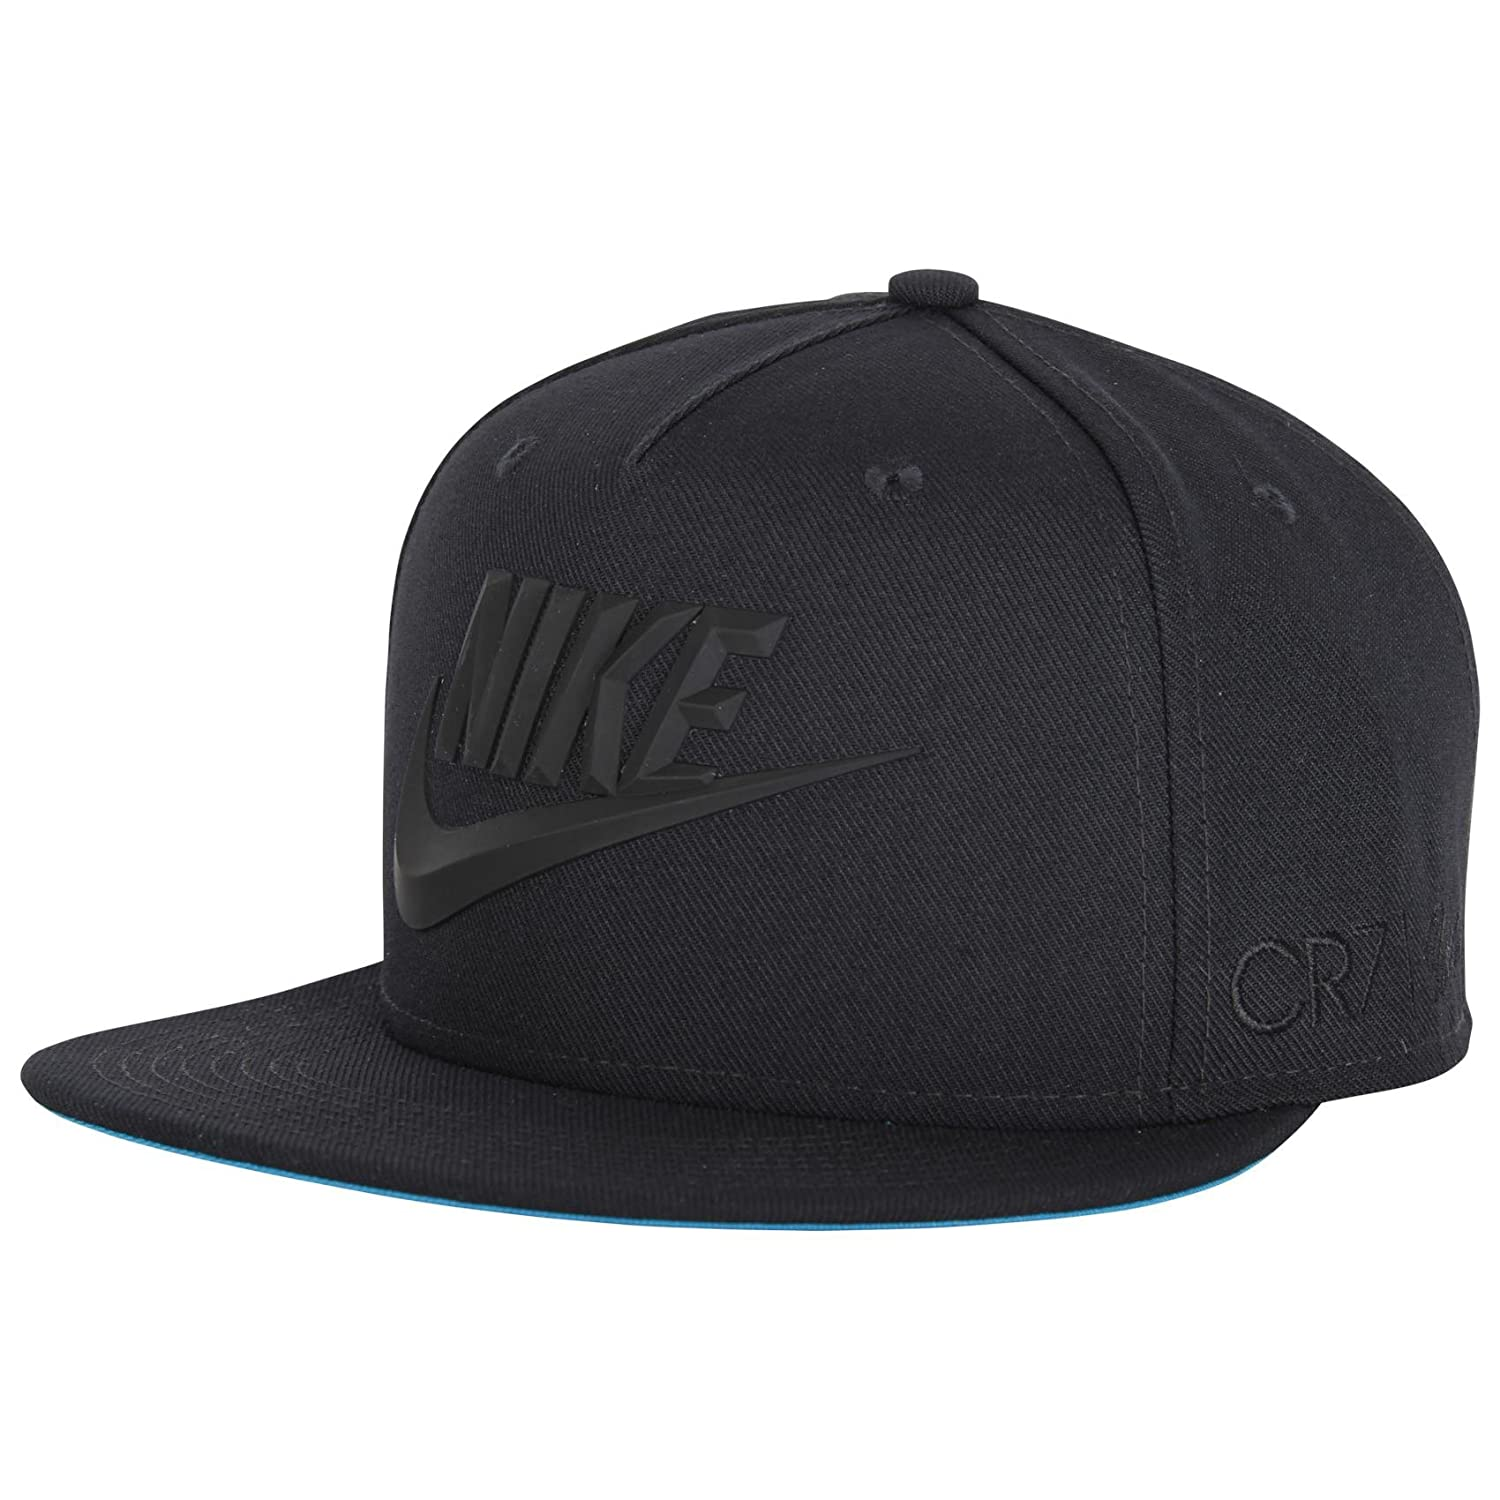 98d60061 Nike CR7 Cristiano Ronaldo Snapback Cap: Amazon.co.uk: Sports & Outdoors